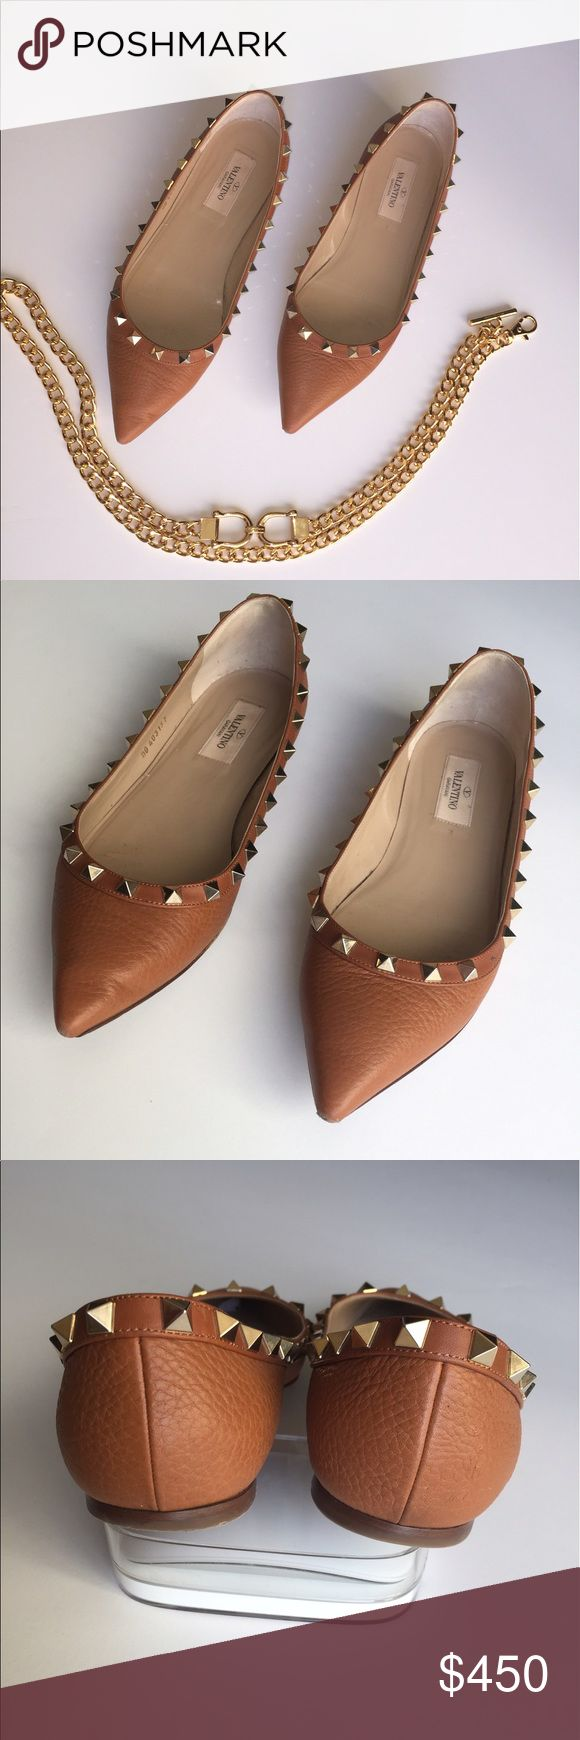 VALENTINO GARAVANI Rockstud Flats VALENTINO Garavani Rockstud Ballerina Flats leather  Size: 37.5 / 7.5.  Color: Pebbled cognac leather Gold-tone pyramid studs embellishments at top lines   These beautiful flats are in good pre-loved condition with a lot of life still left in them! Most wear is on the bottom and inner sole. Also, there is some wear on the front tips that is mostly visible only when looked at from the bottom of the shoe. Box and dustbag not included. I will ship same day…